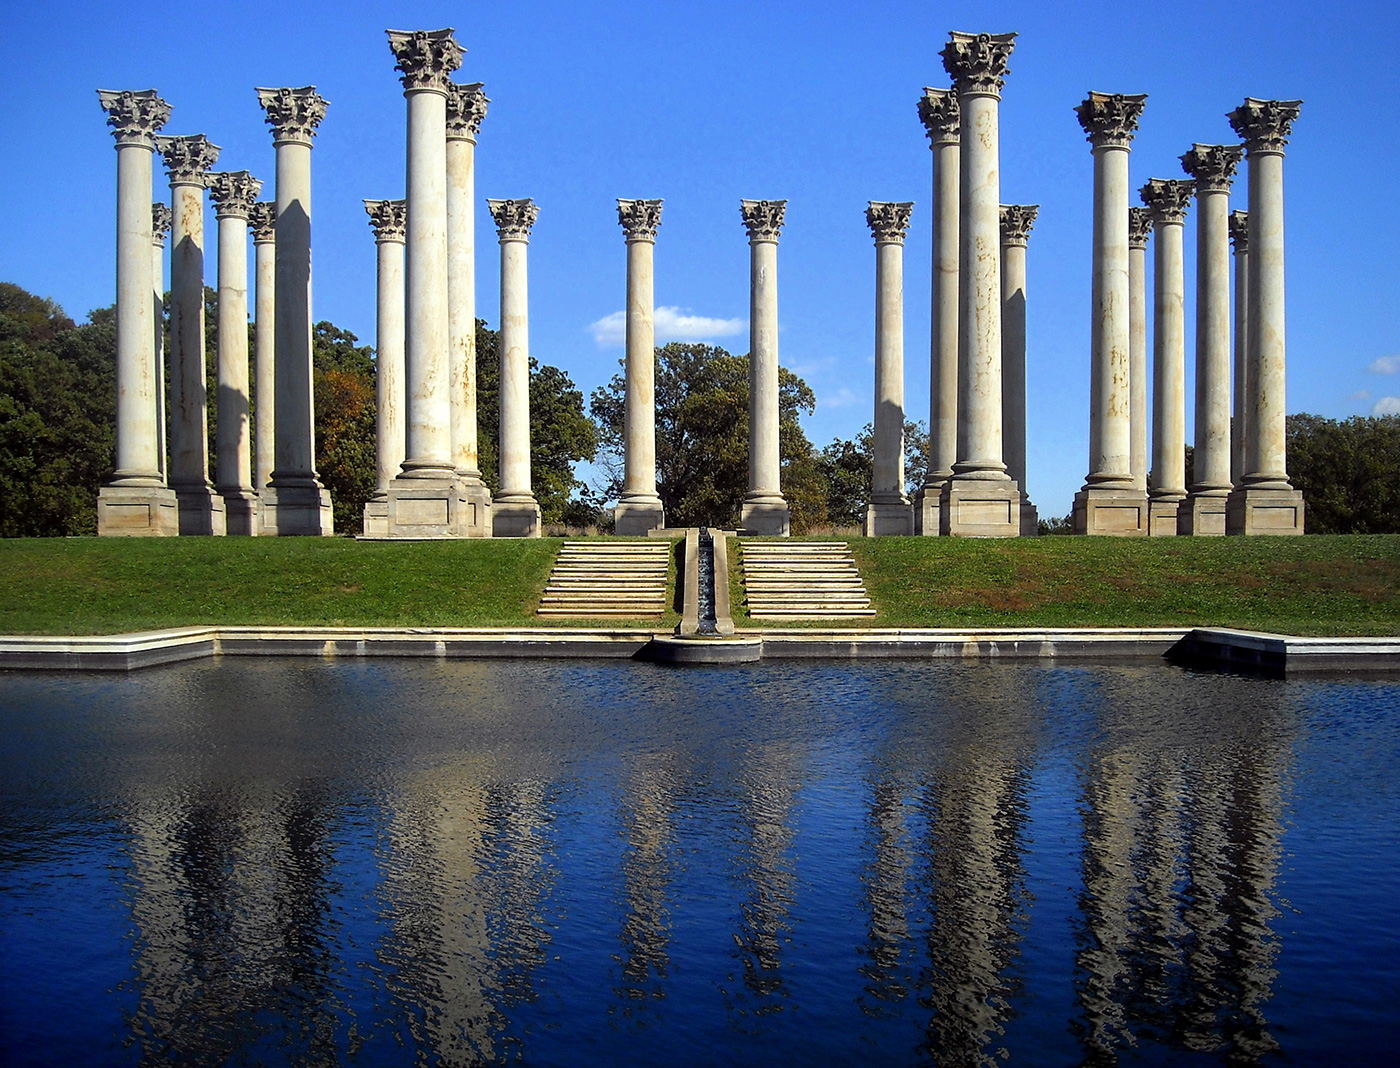 National Capitol Columns: a) 22 of 24 Corinthian columns removed from the United States Capitol in 1958 and set up at the United States National Arboretum, Washington, D.C. (Image via Wikimedia Commons)